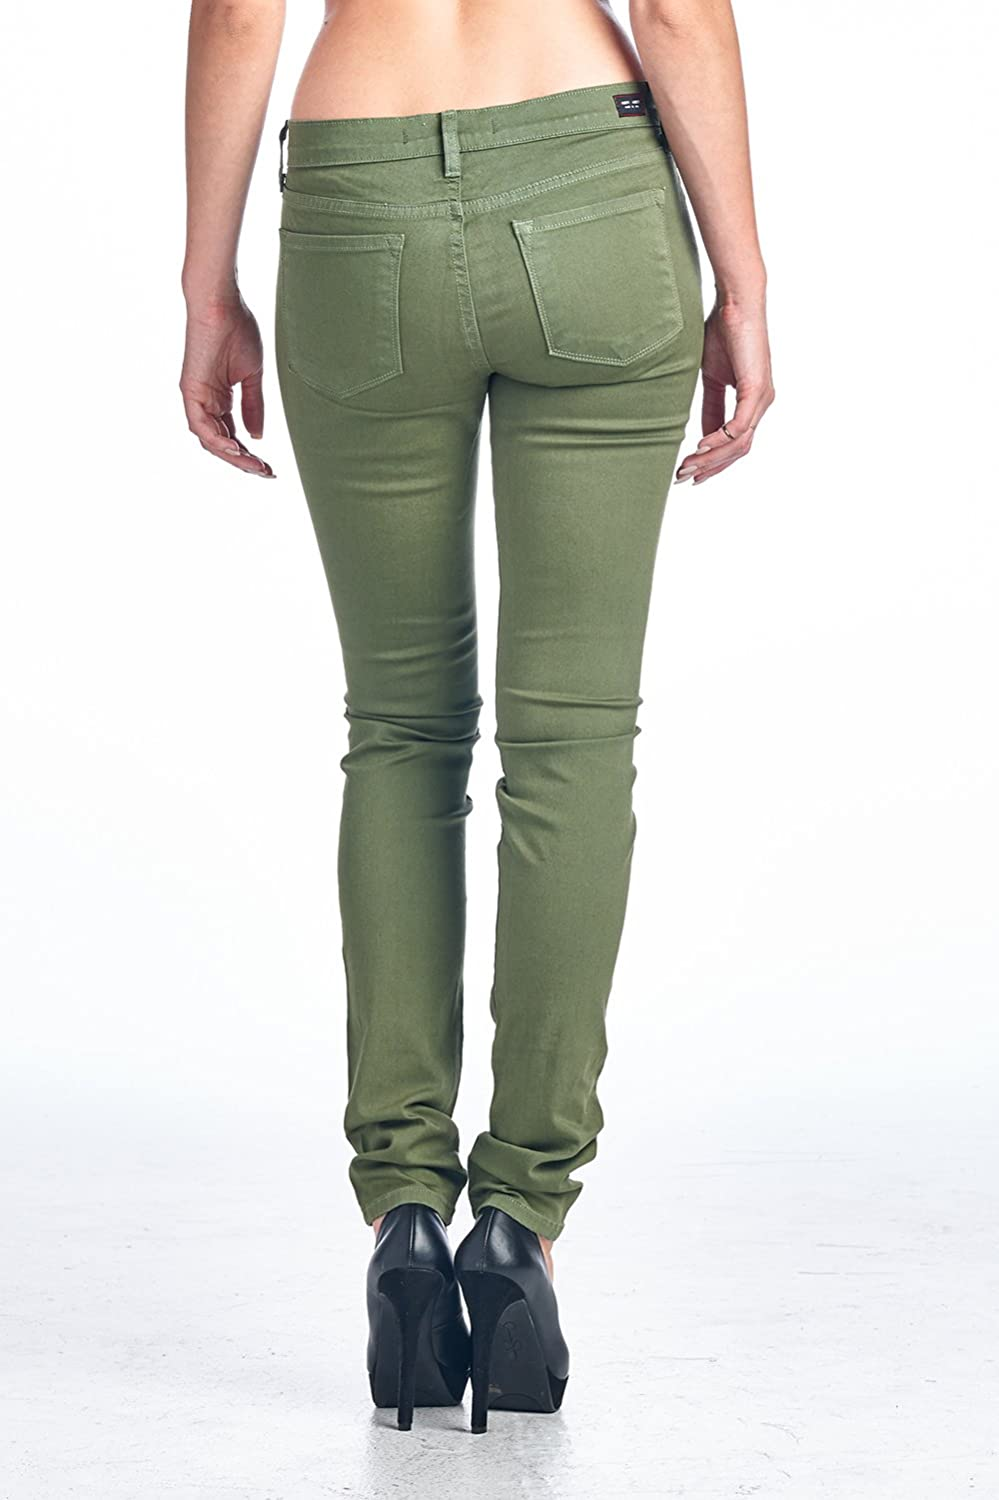 Angry Rabbit Womens Colored Skinny Designers Premium Demin Jeans Made in USA